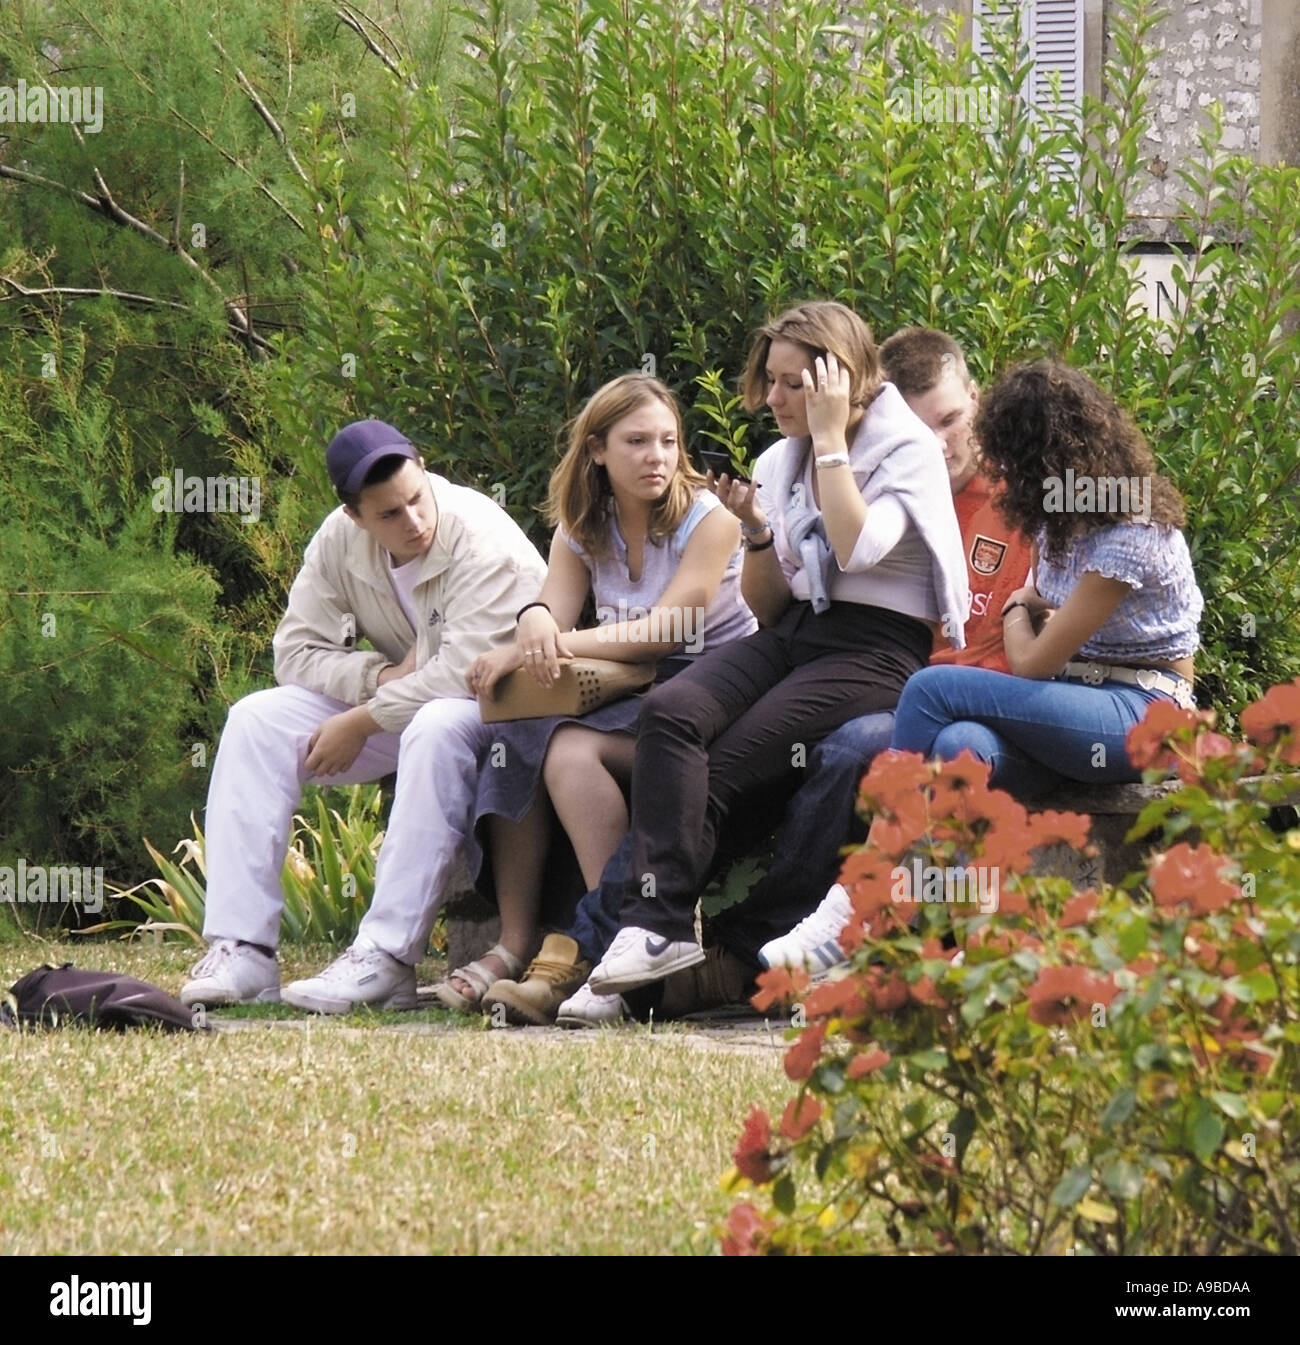 france group of french teenagers one using mobile phone - Stock Image